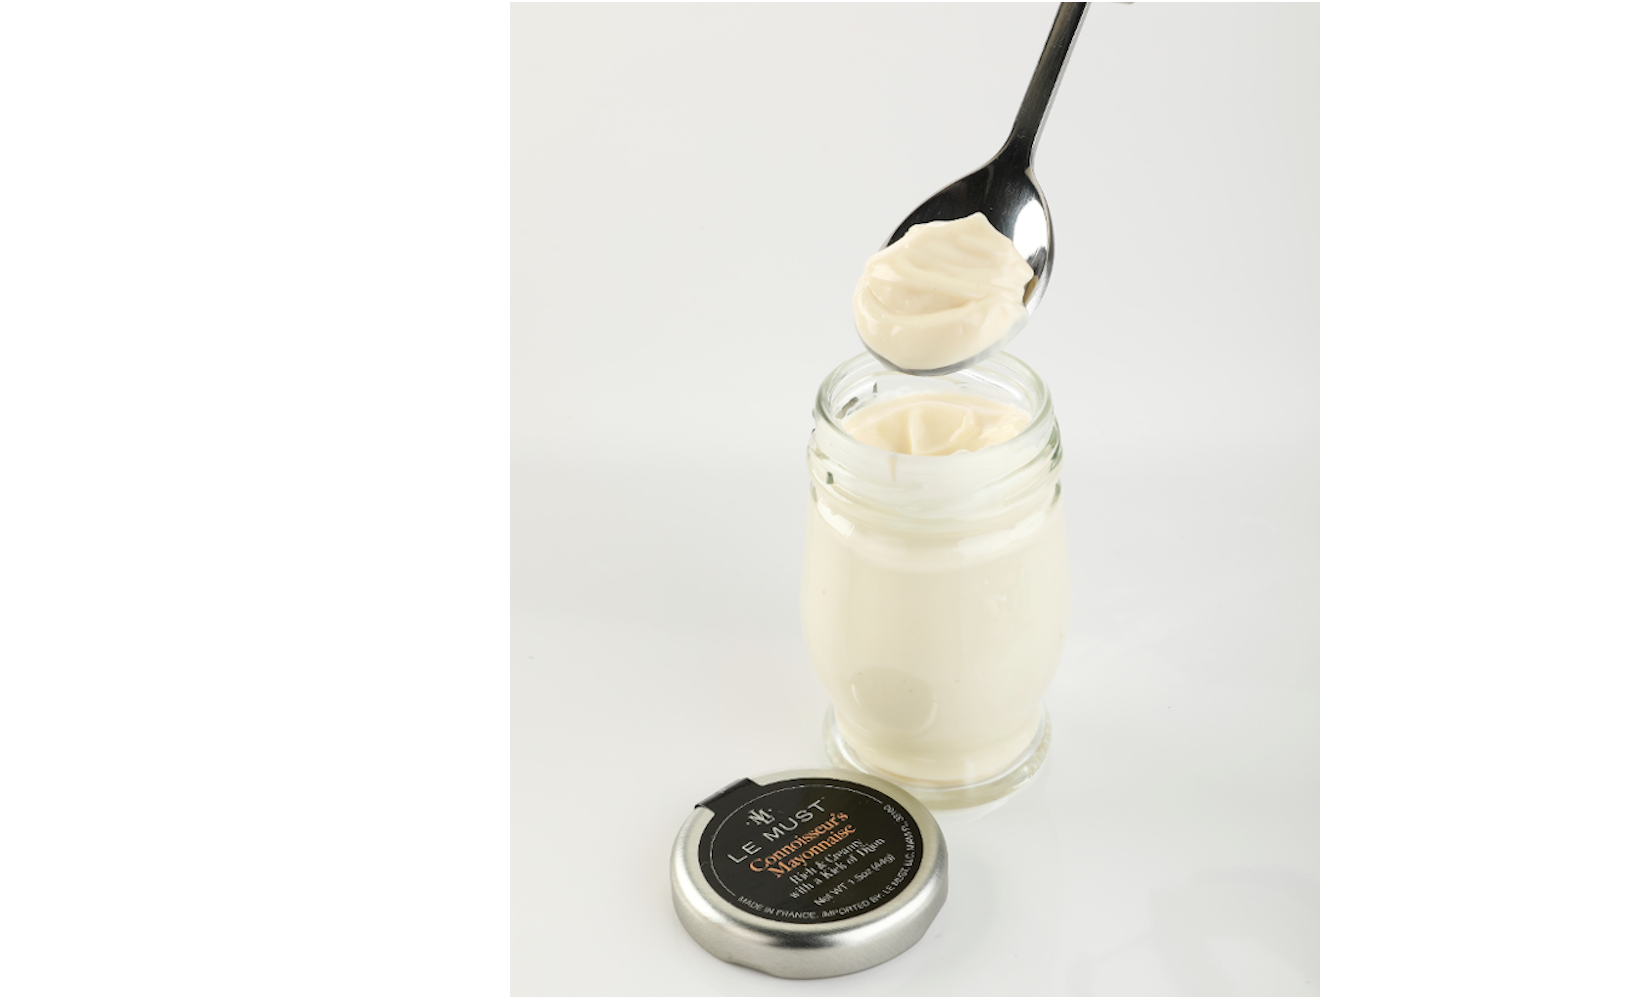 mayonnaise-sauce-mini-bottle-2